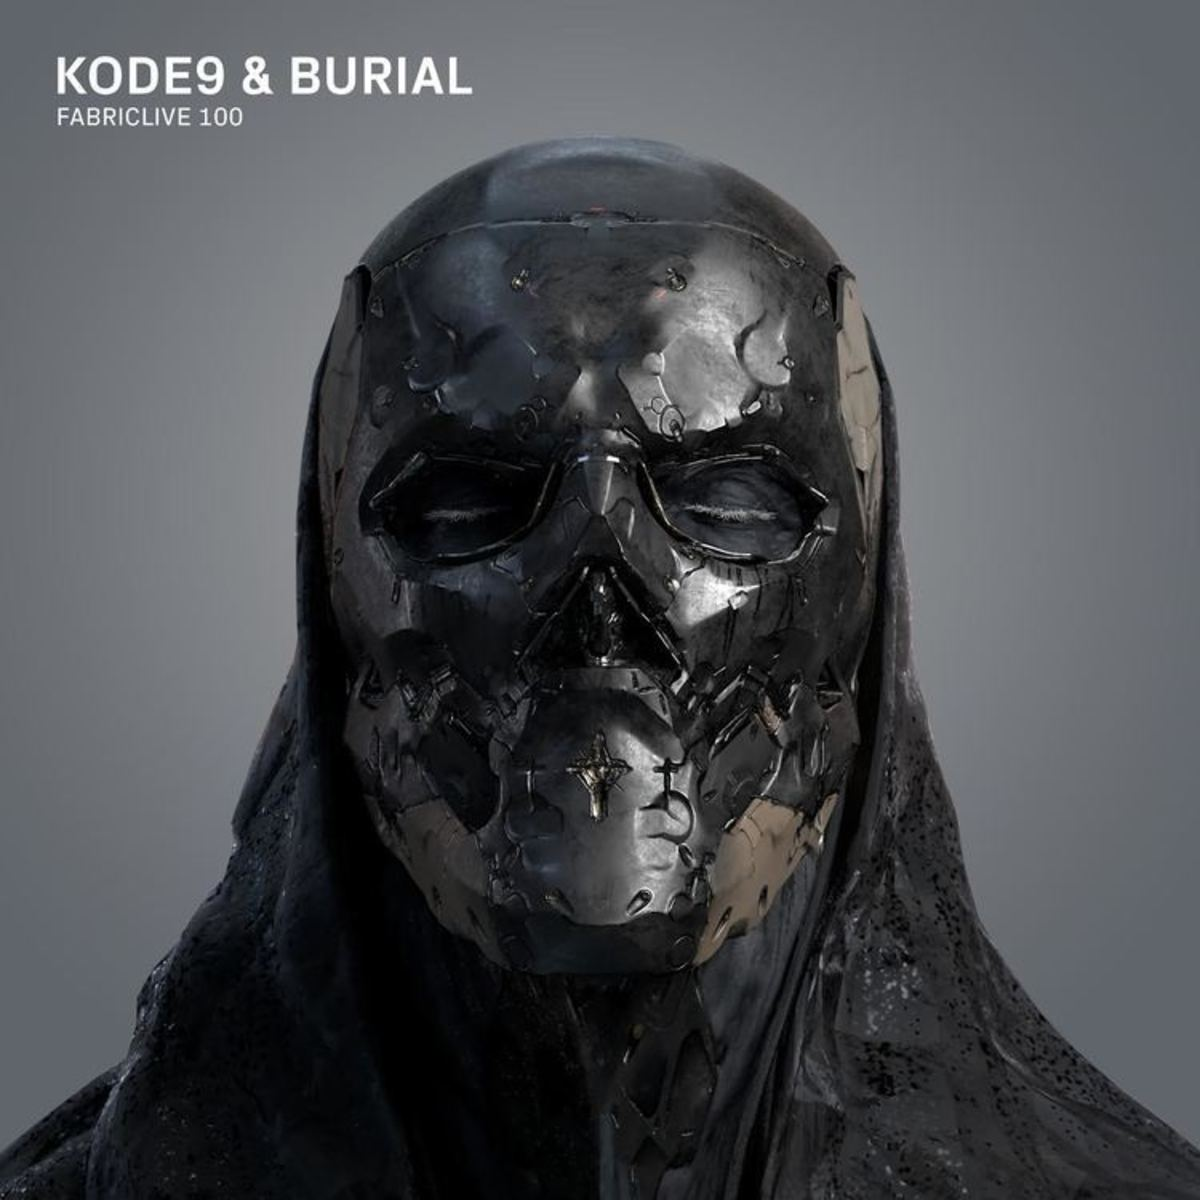 Kode9 & Burial Fabriclive 100